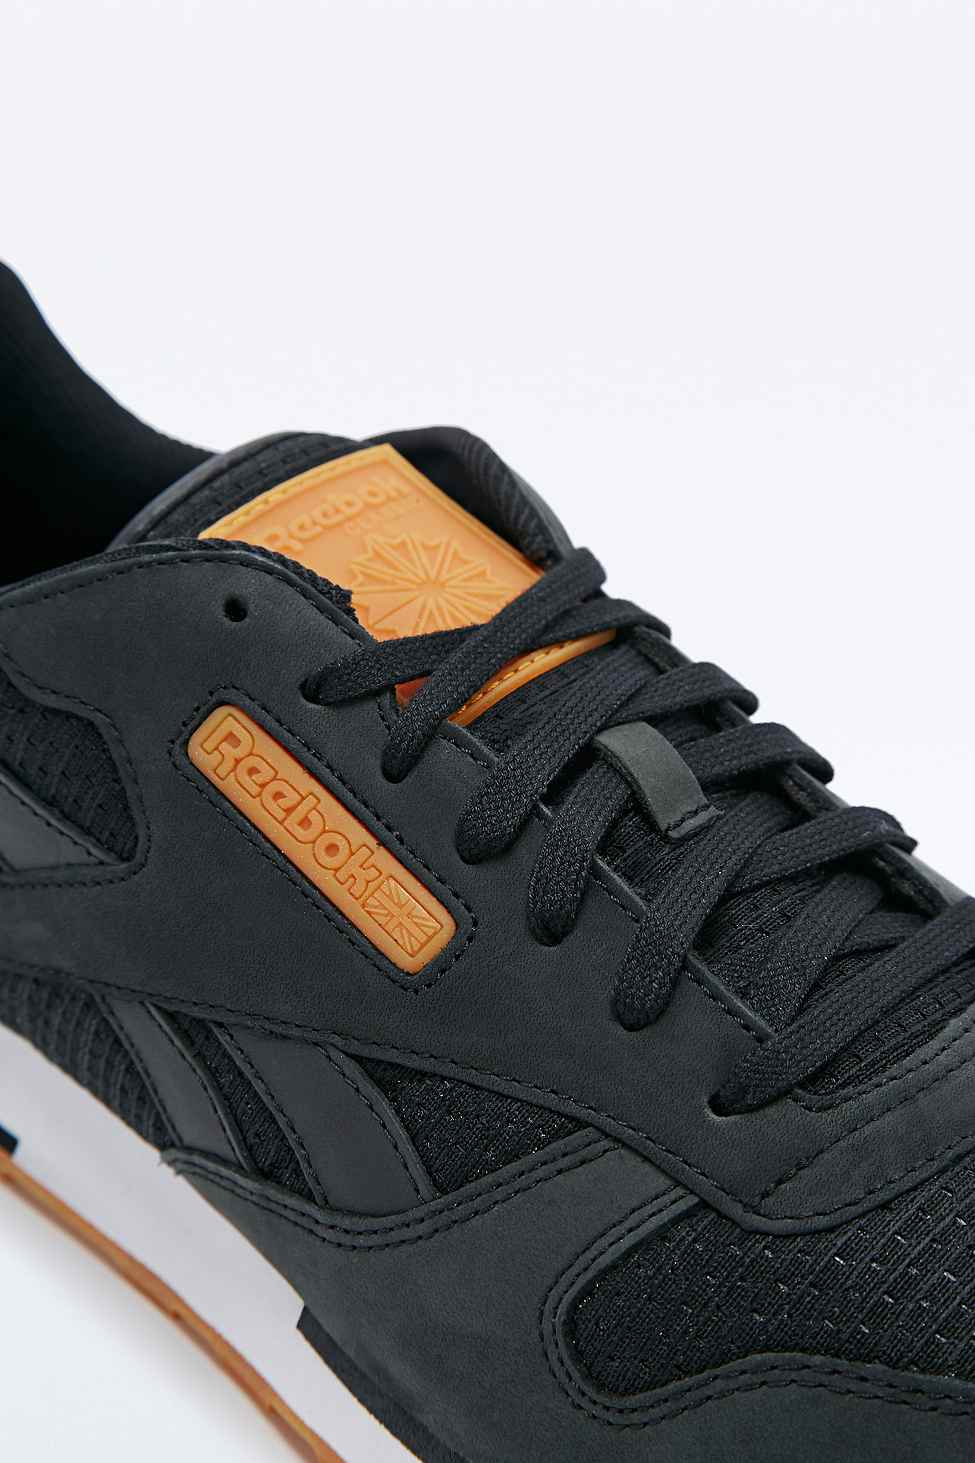 Reebok Classic Leather Utility Woven Trainers In Black in Black for ... 85c94c928